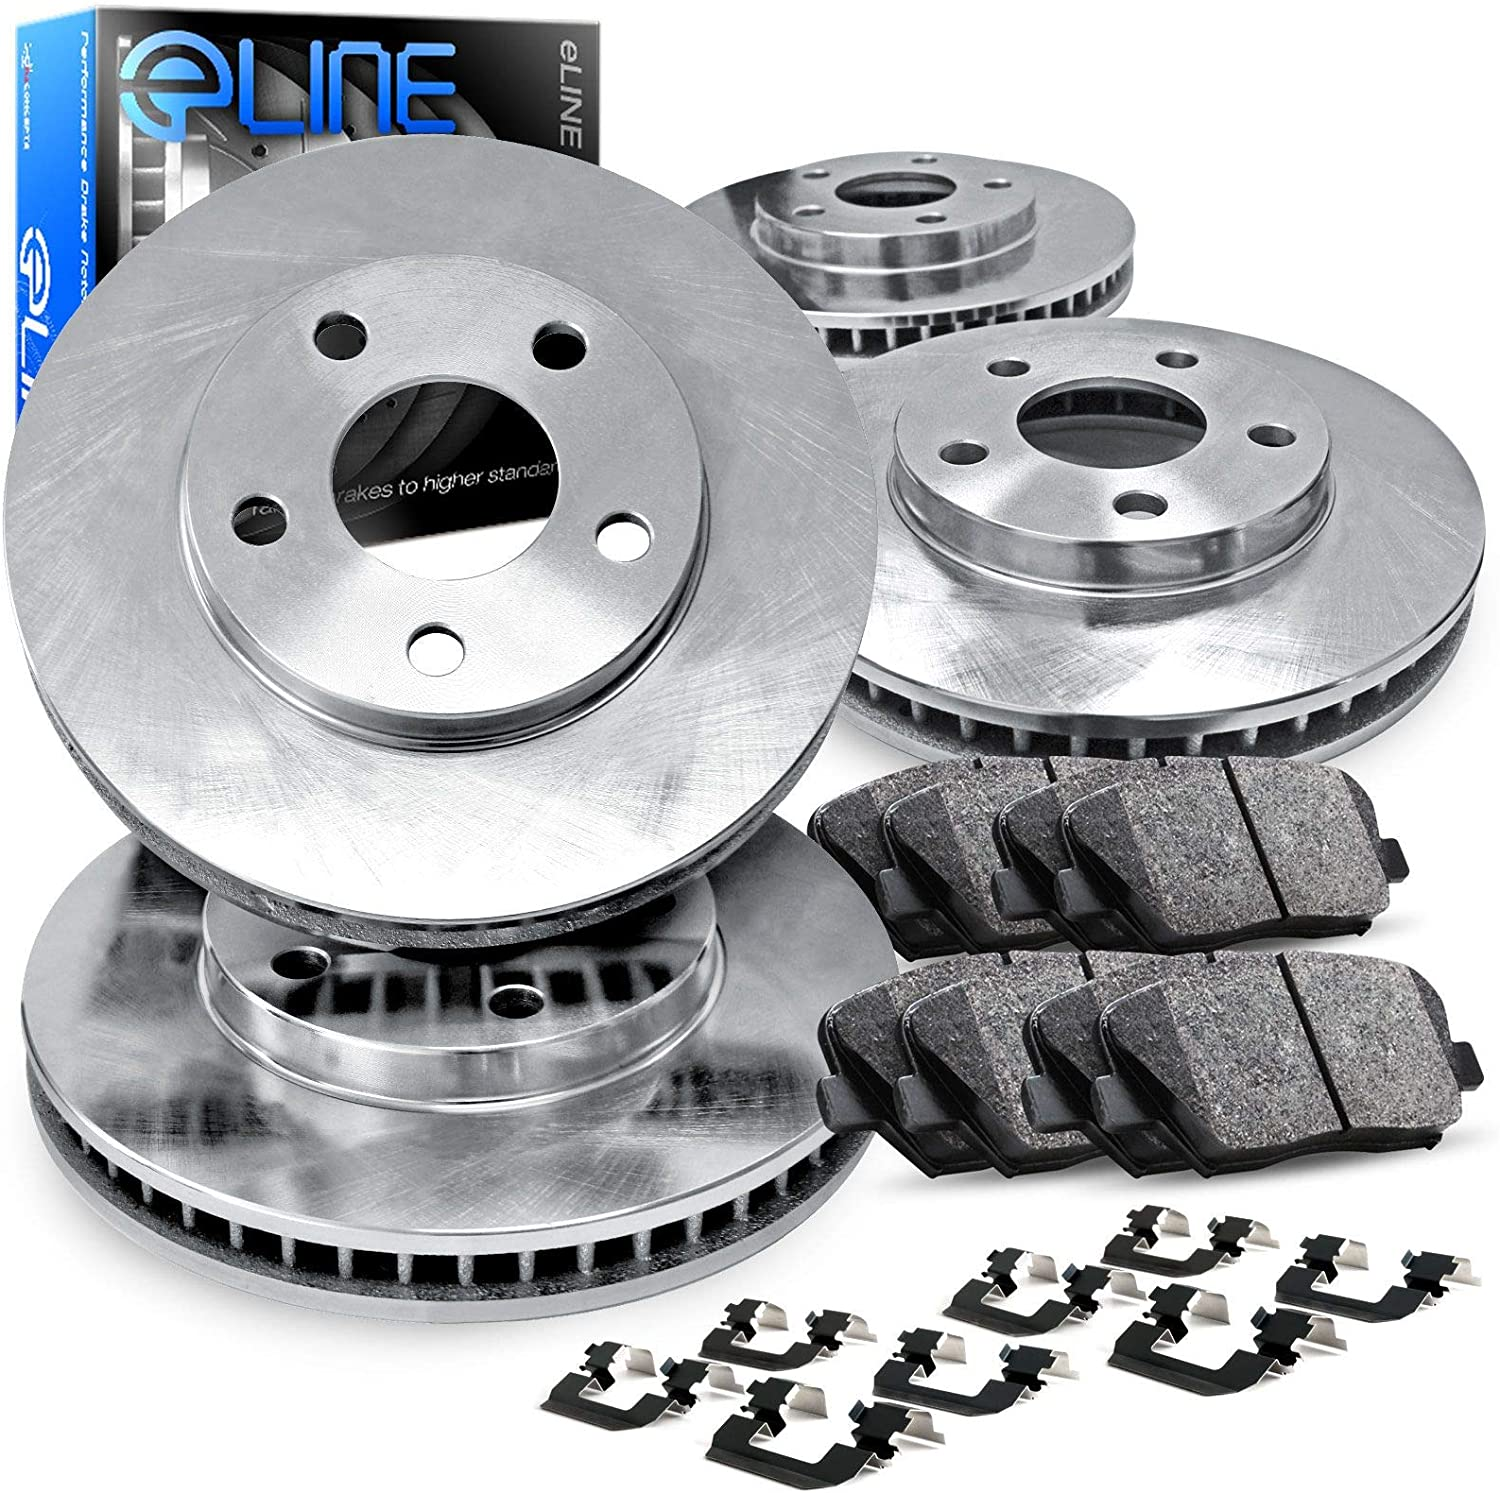 Rear Rotors 6lug 2 Black Coated Cross-Drilled Disc Brake Rotors High-End Fits:- GX470 4Runner FJ Cruiser Sequoia